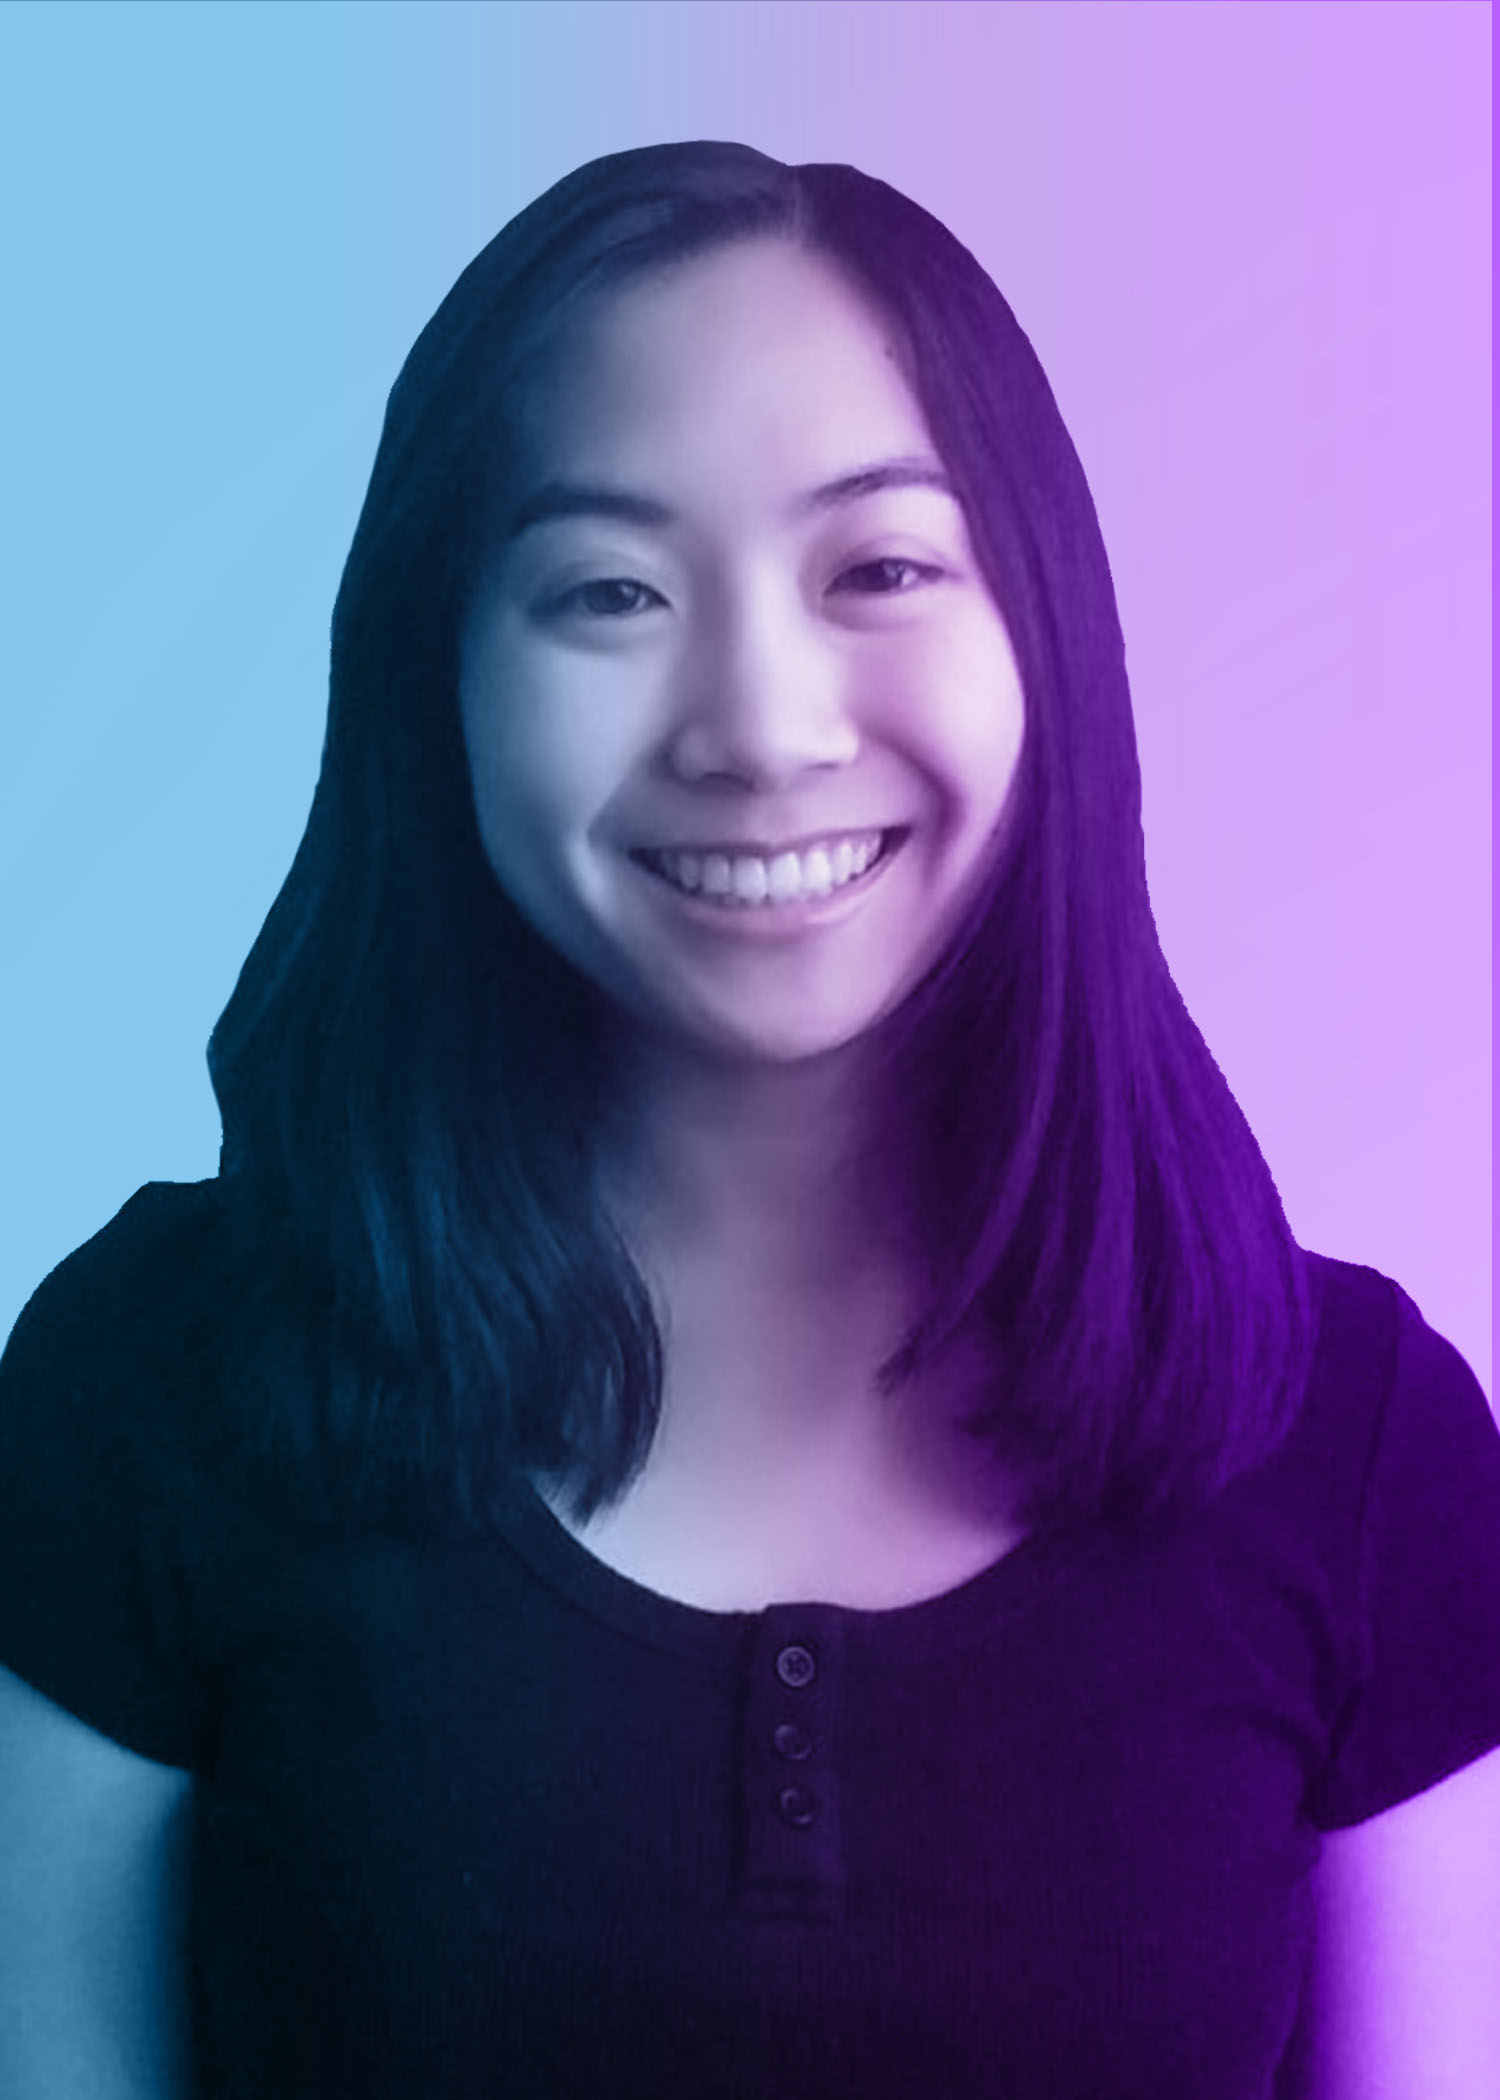 photo of smiling female college student with straight dark hair. blue and purple overlay on photo.